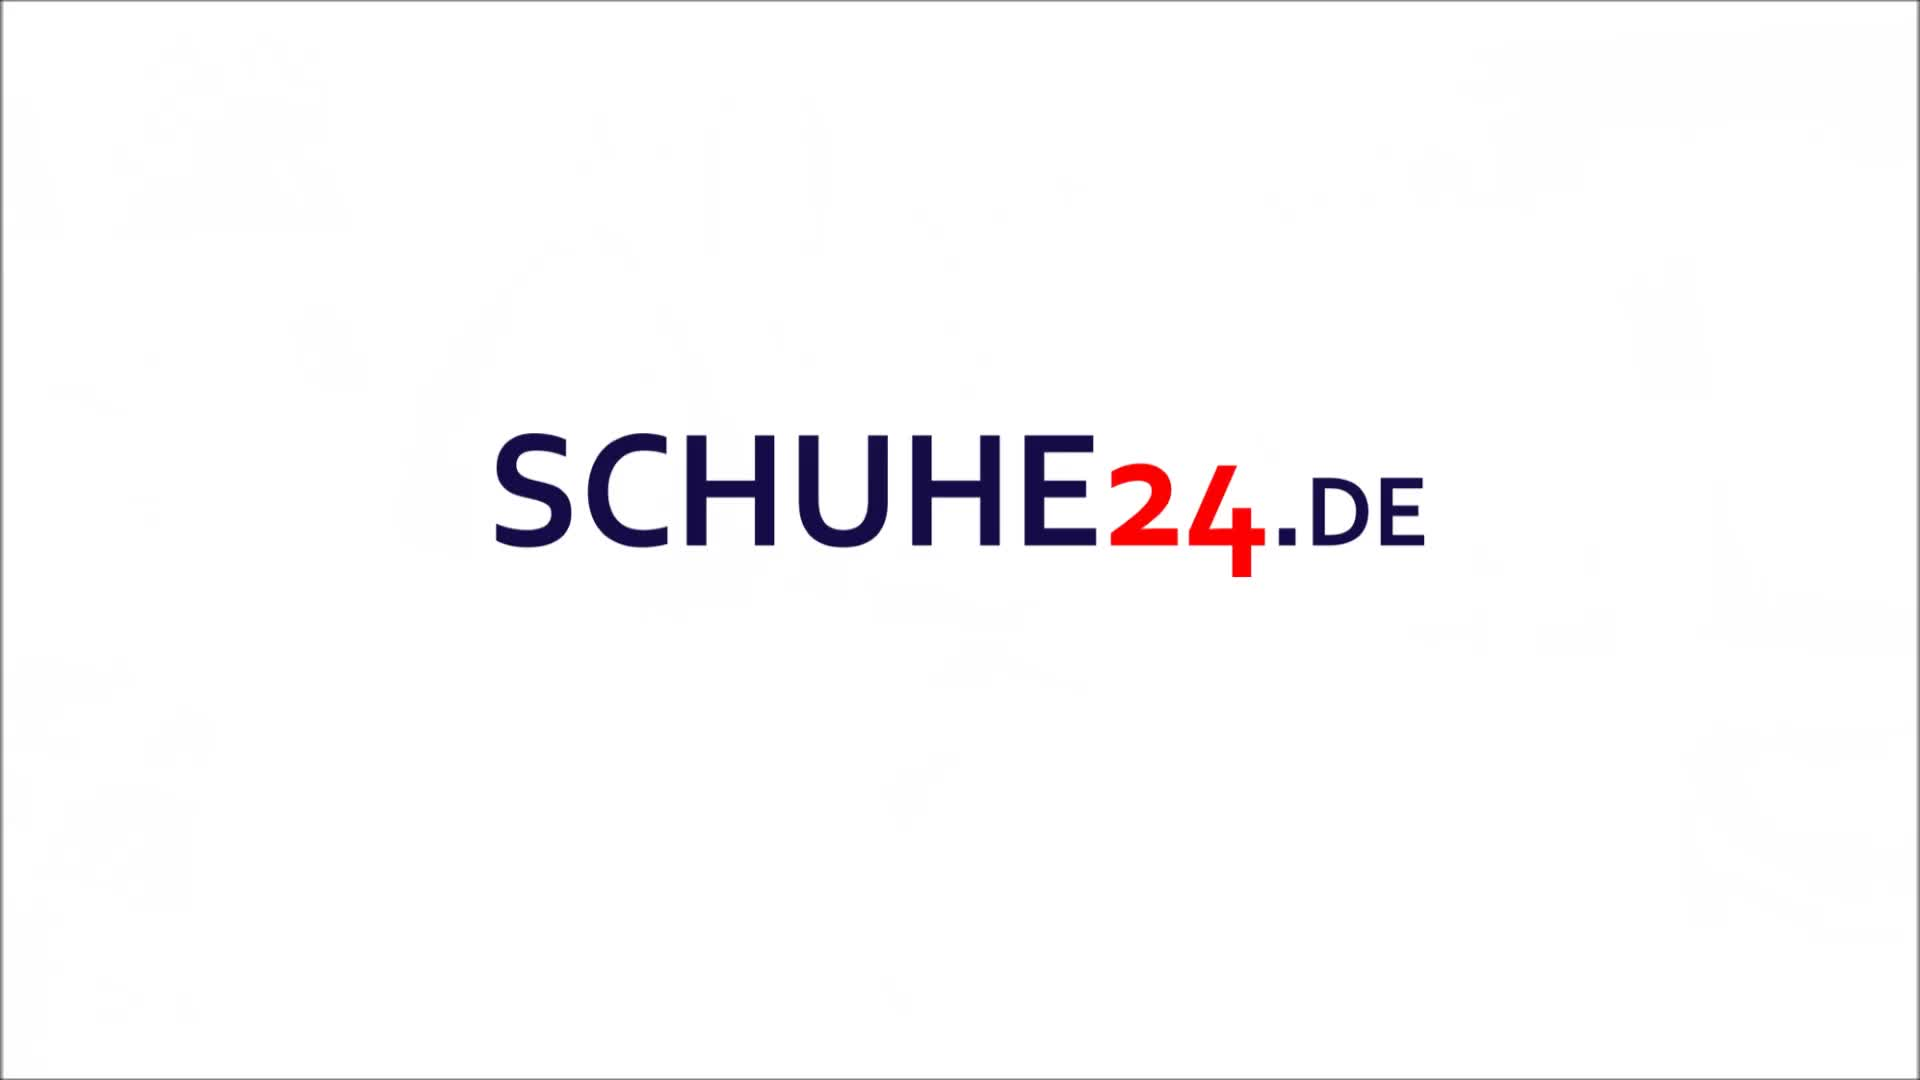 Schuhversand in alle Welt - From Wiesbaden with Love | Schuhe24.de